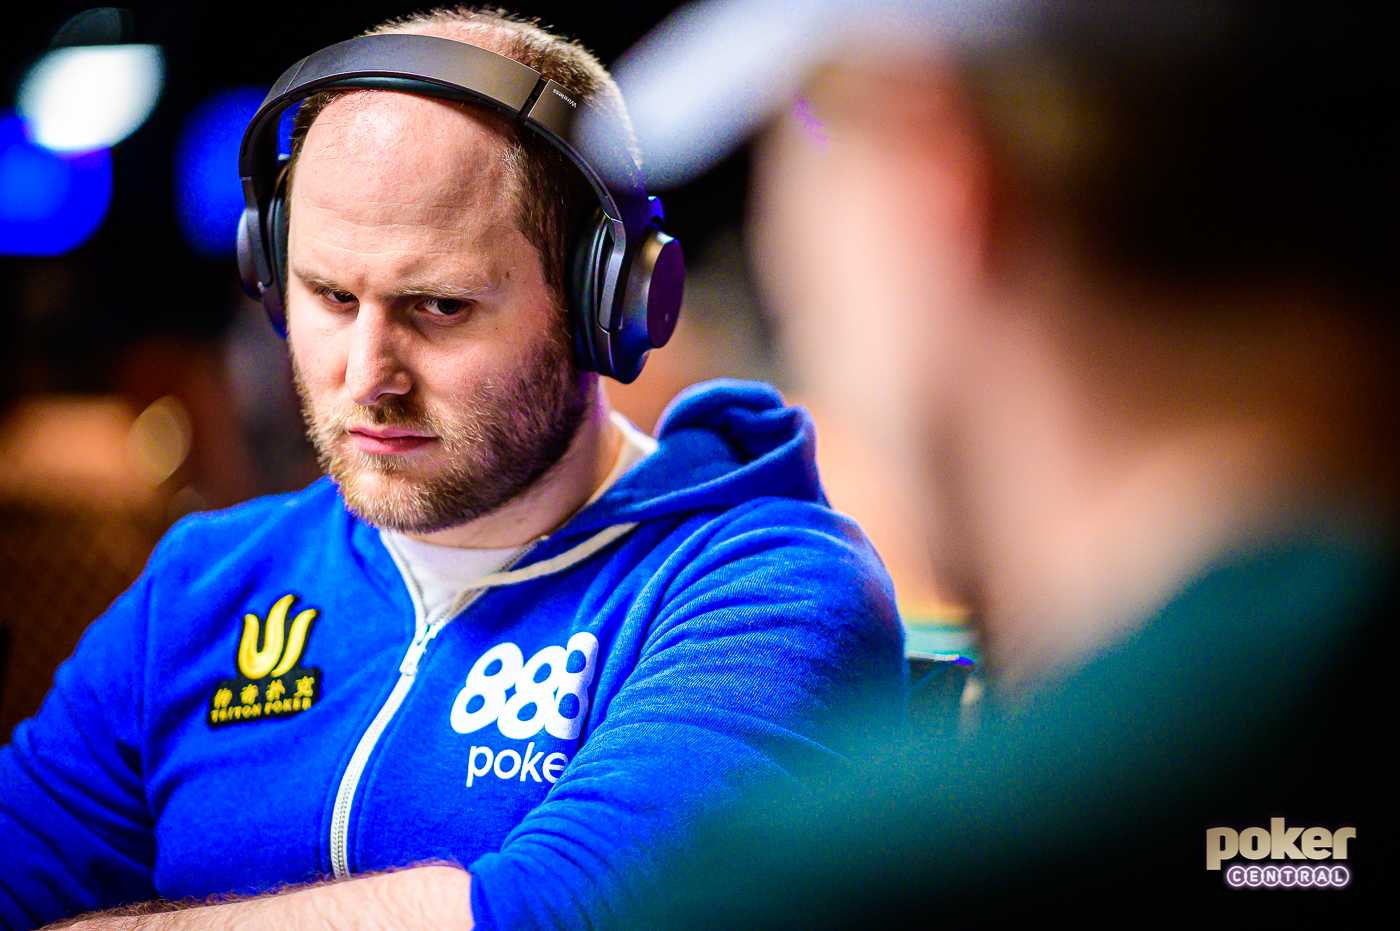 Focused & Determined: Sam Greenwood is ready for a final table run in the Main Event.